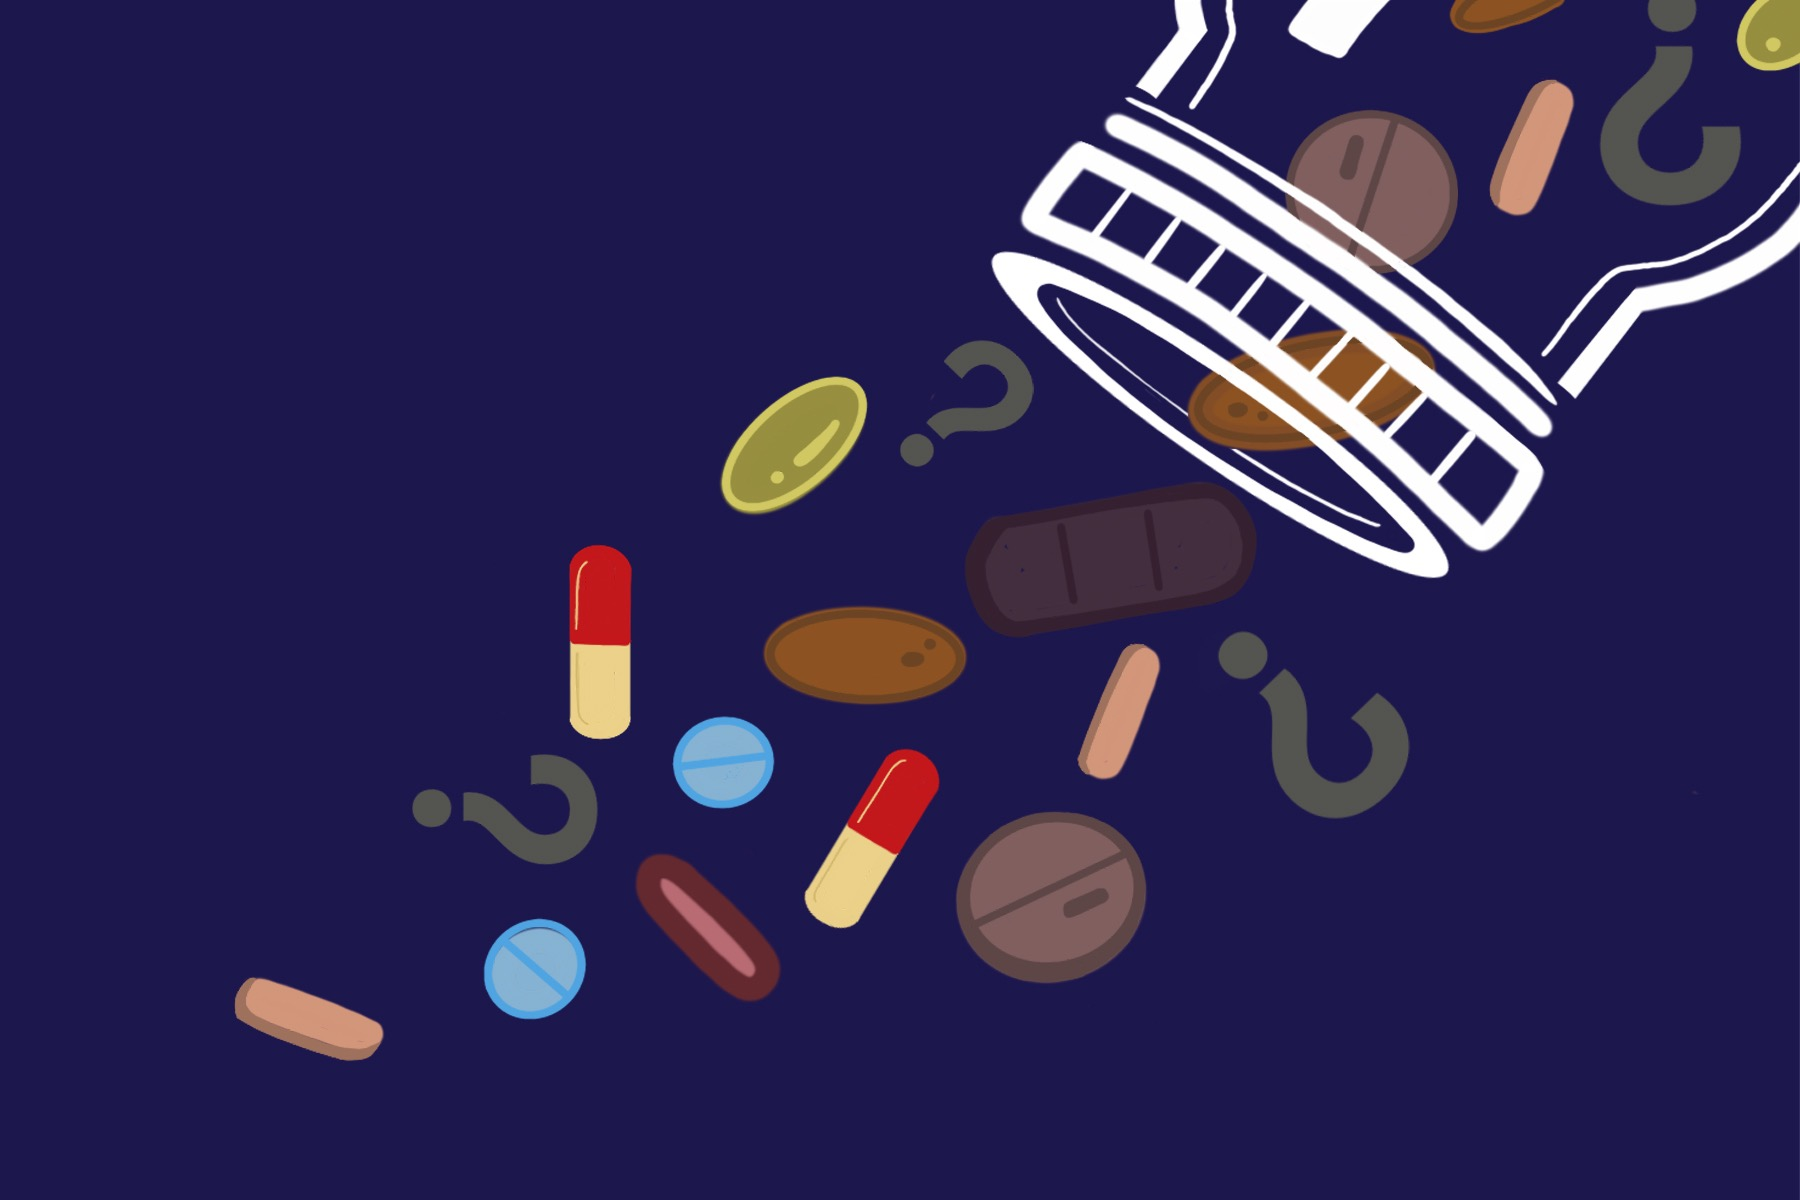 Illustration of supplements falling out of a bottle